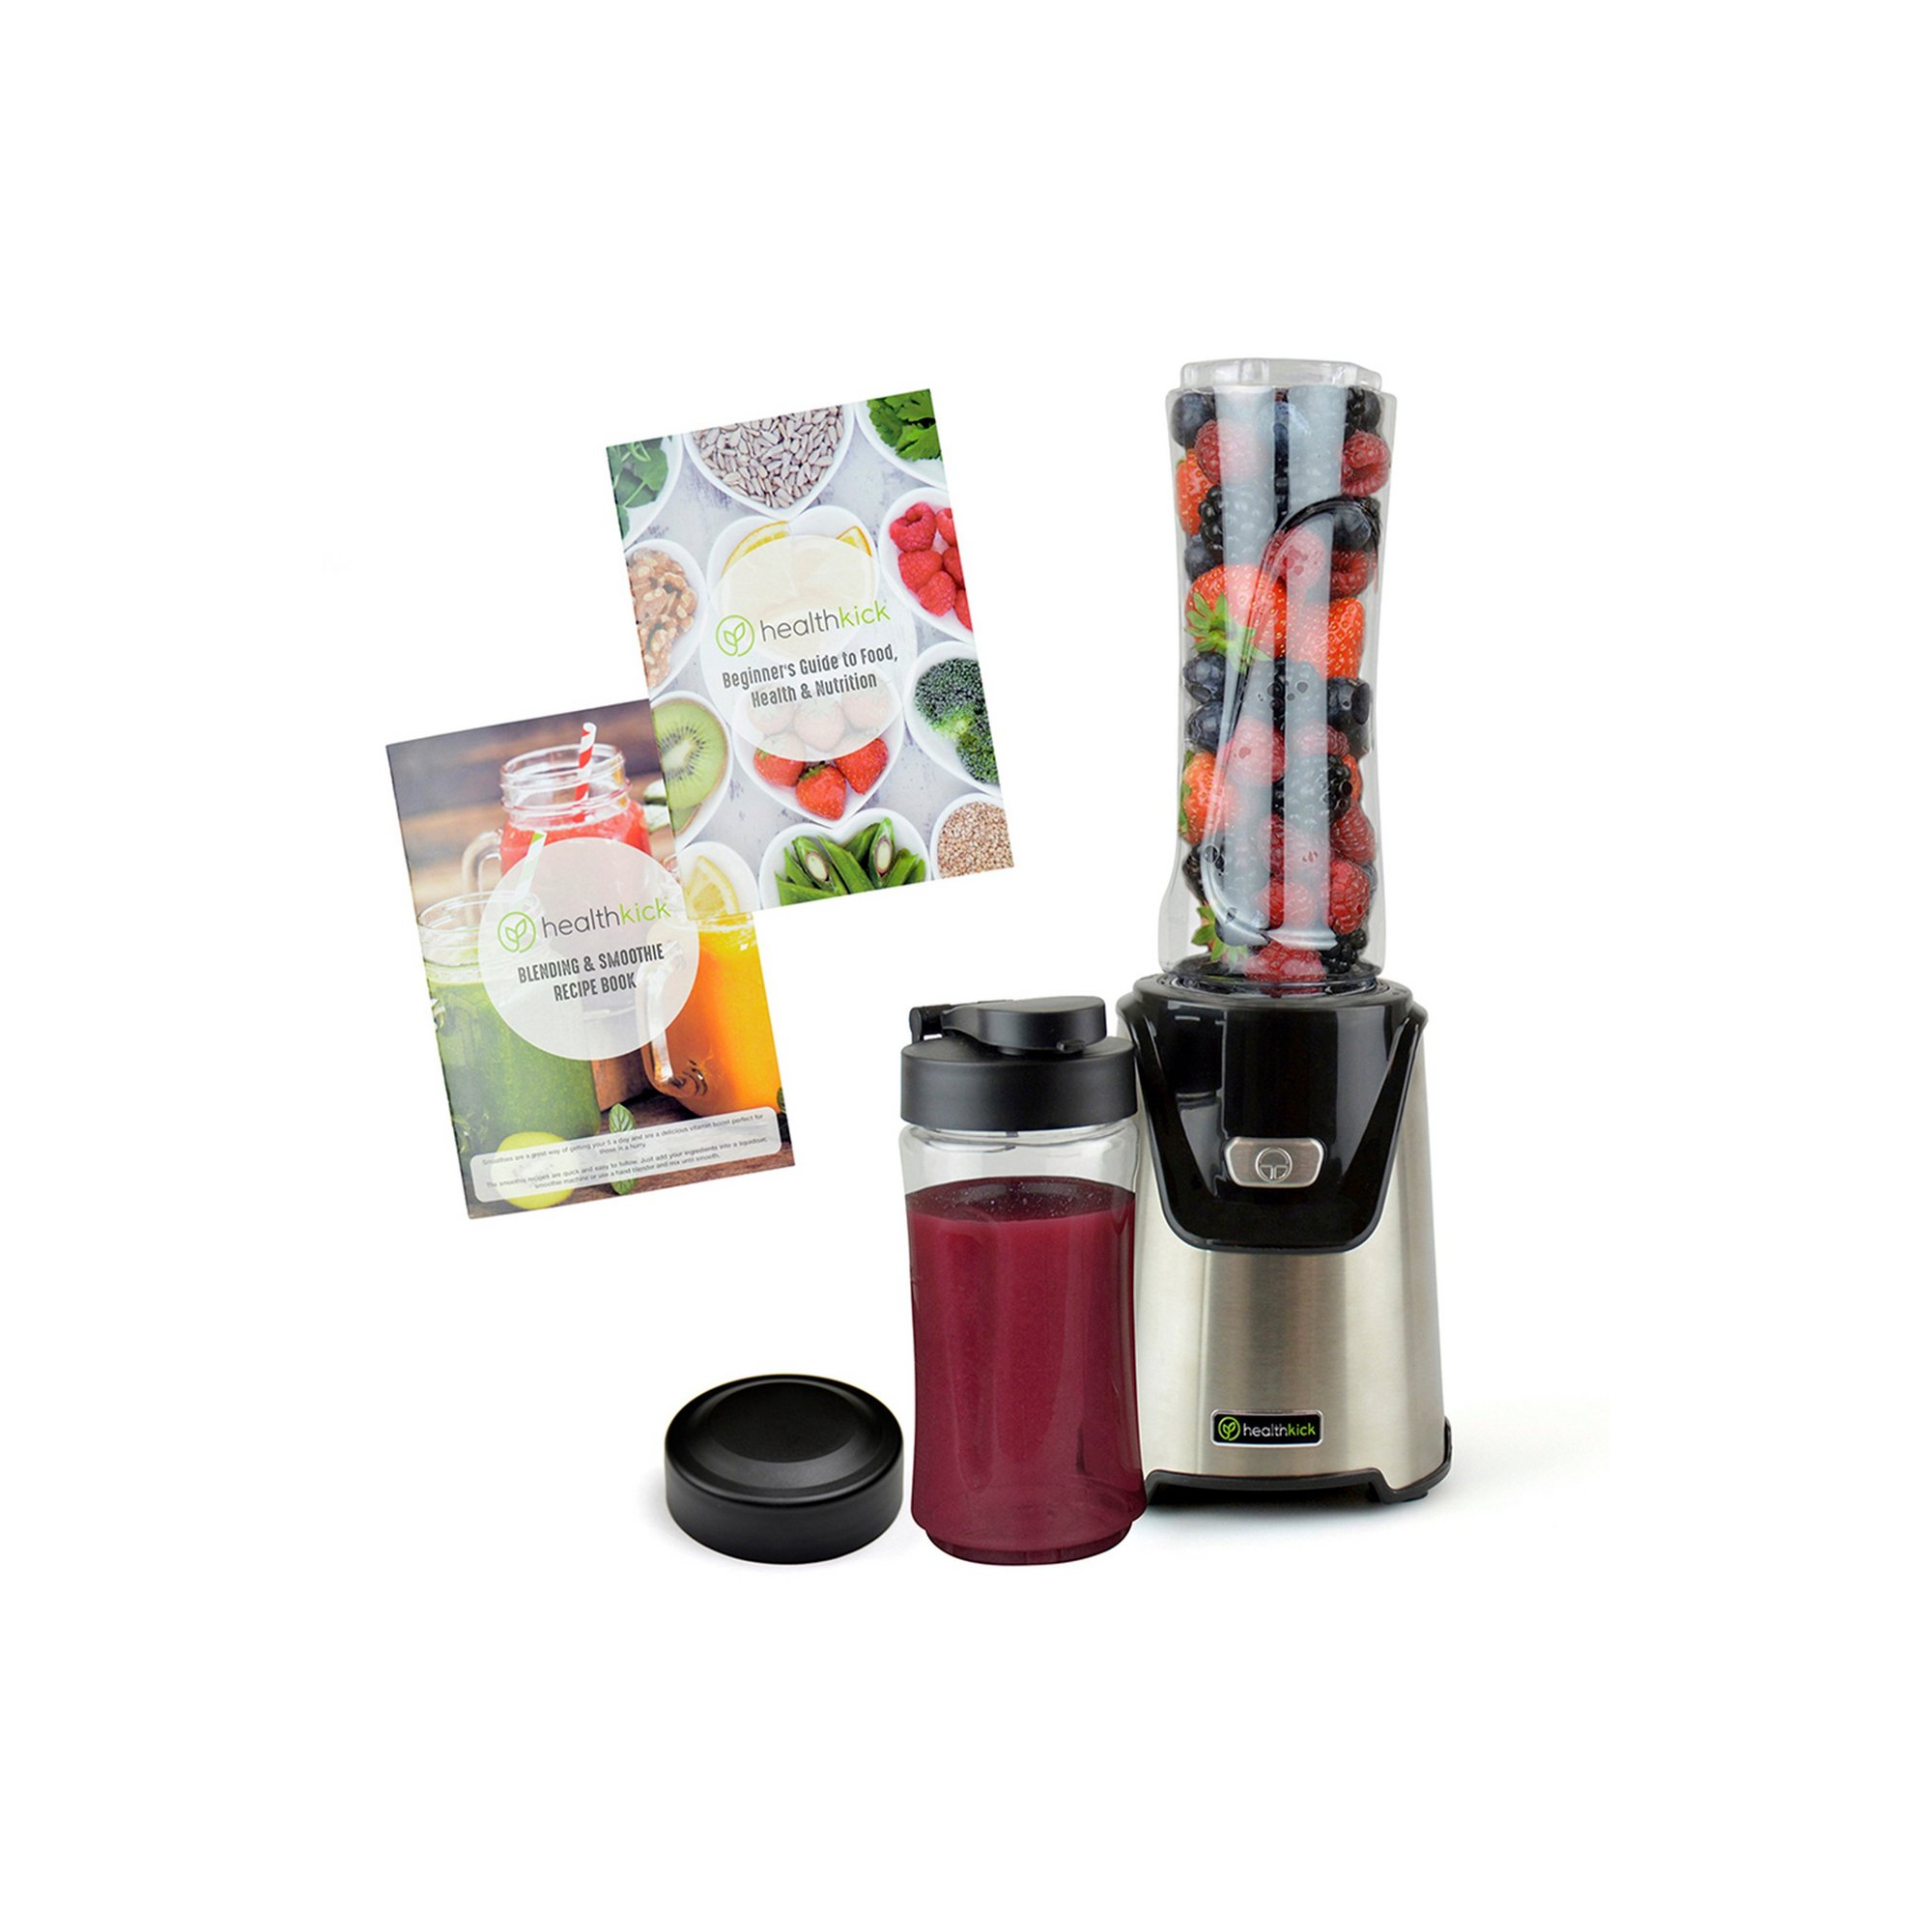 Image of Health Kick 400W Personal Sports Blender